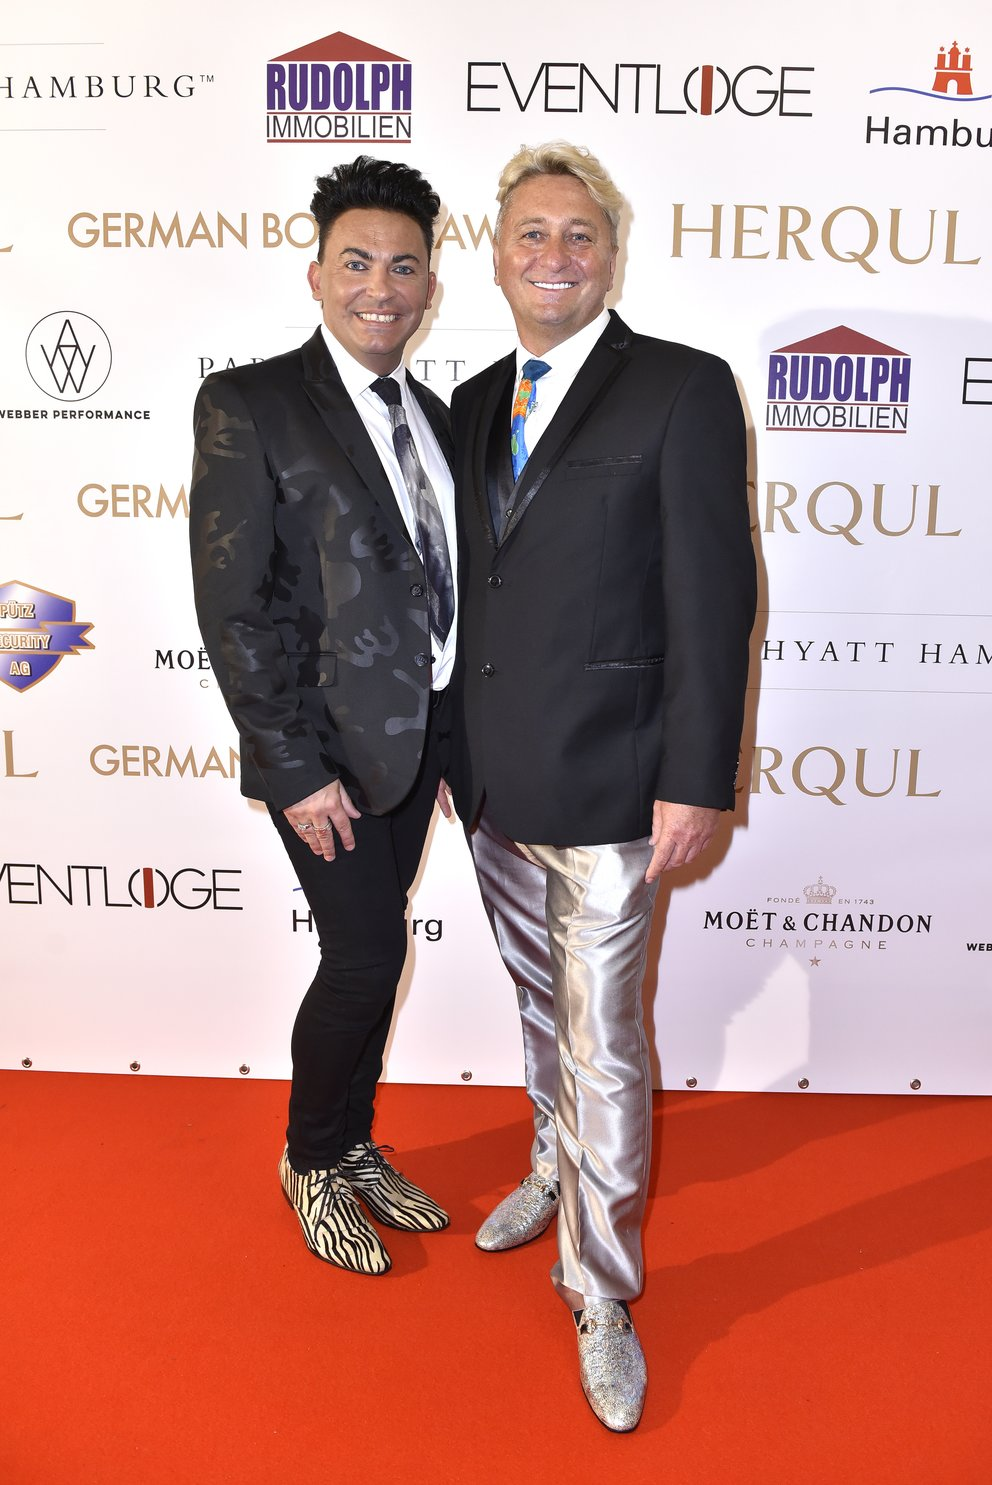 German Boxing Awards